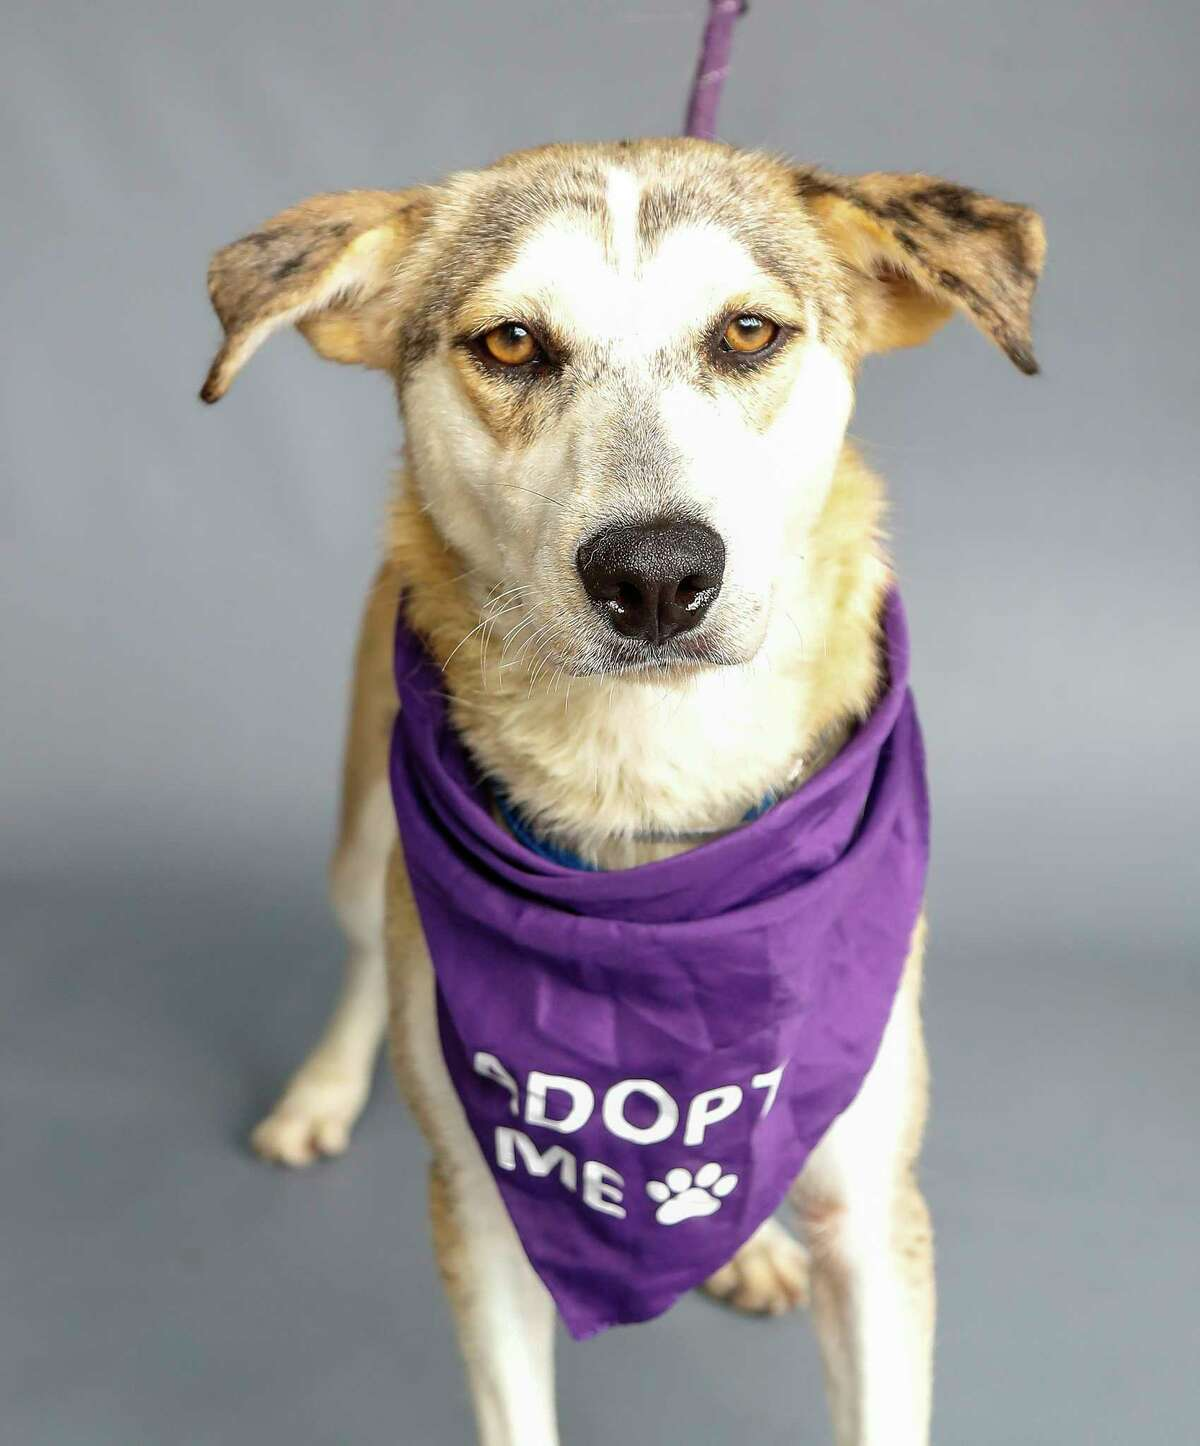 Candy (A1694228) is a 2-year-old, female, husky/Labrador mix who first came to the shelter as an